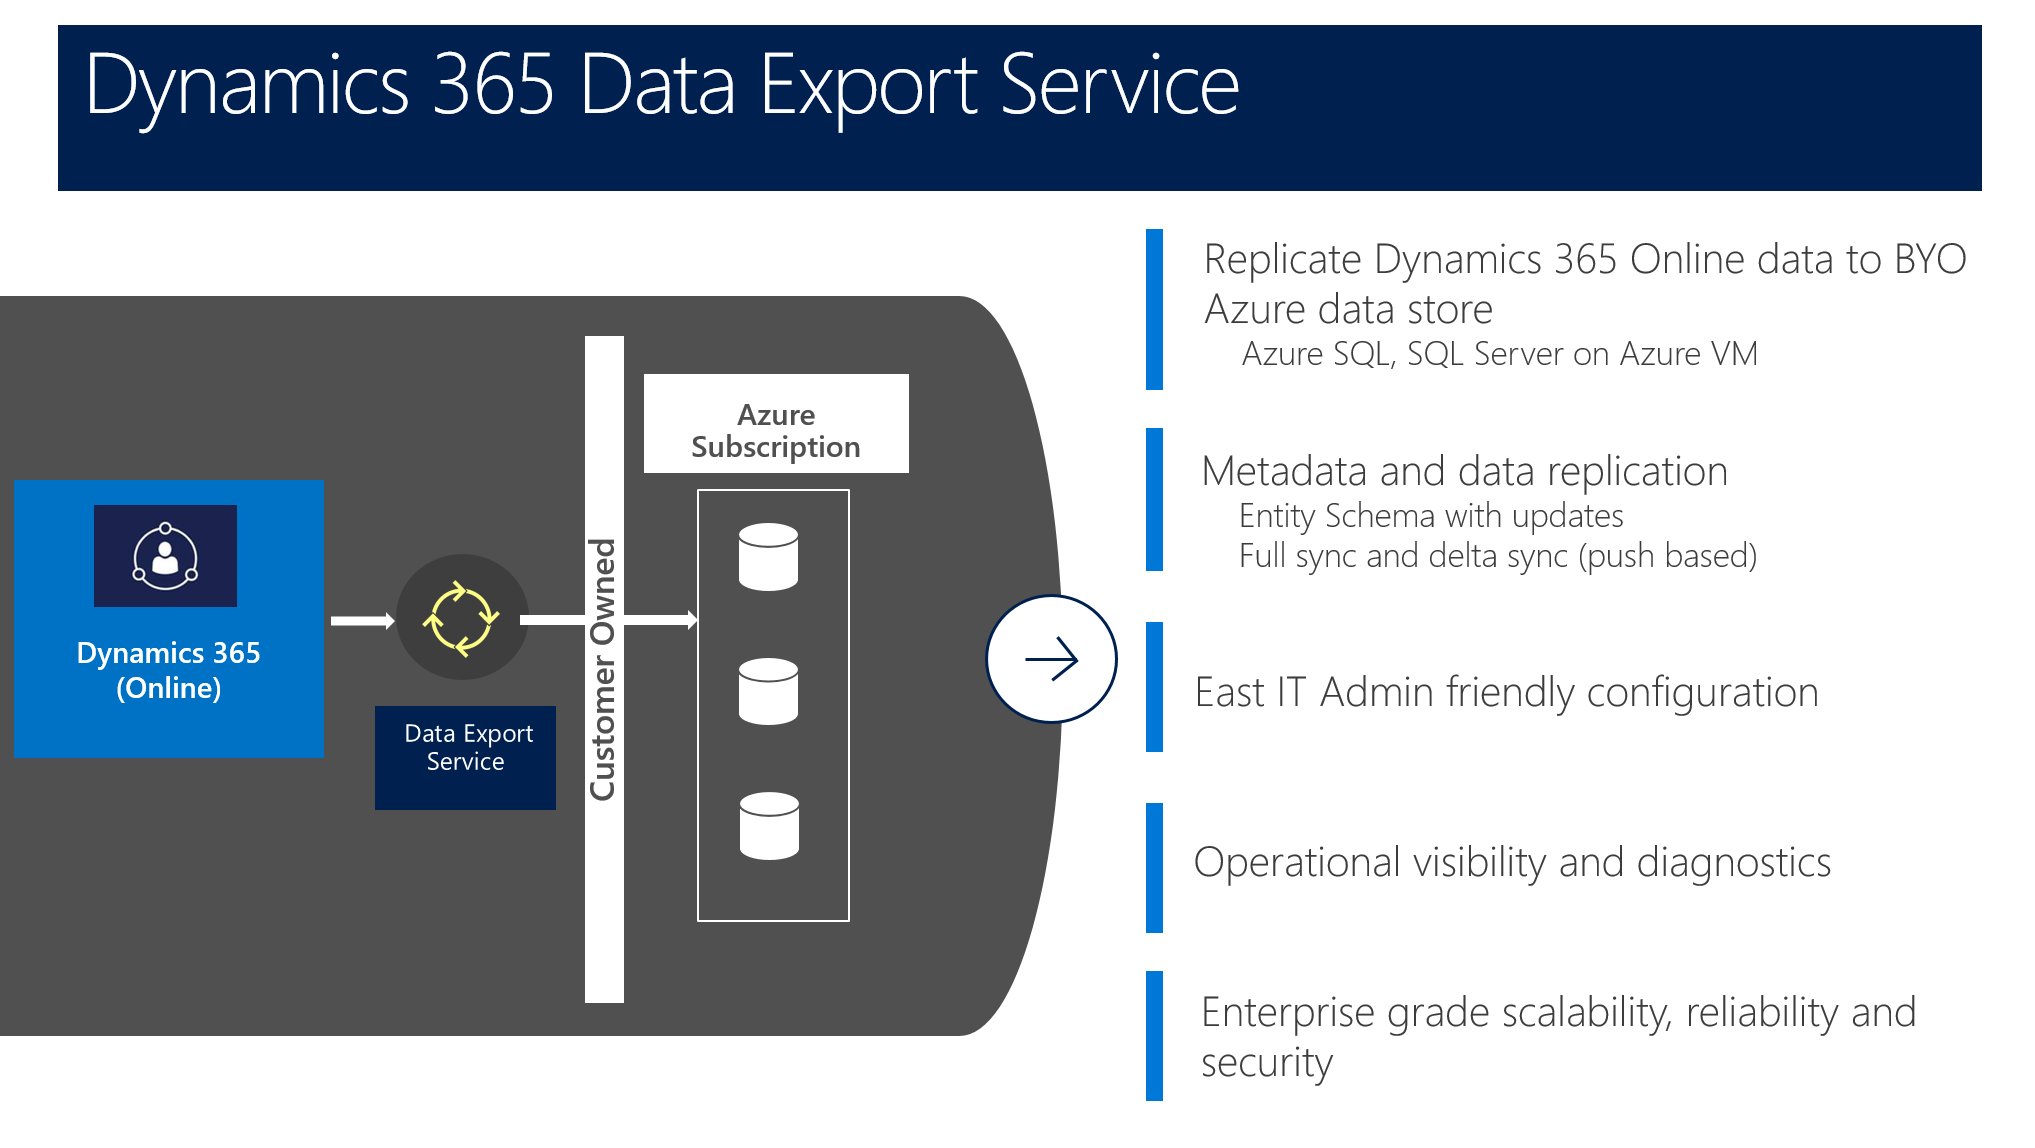 5 Key Themes of the Next Release of Microsoft Dynamics 365_Image 22